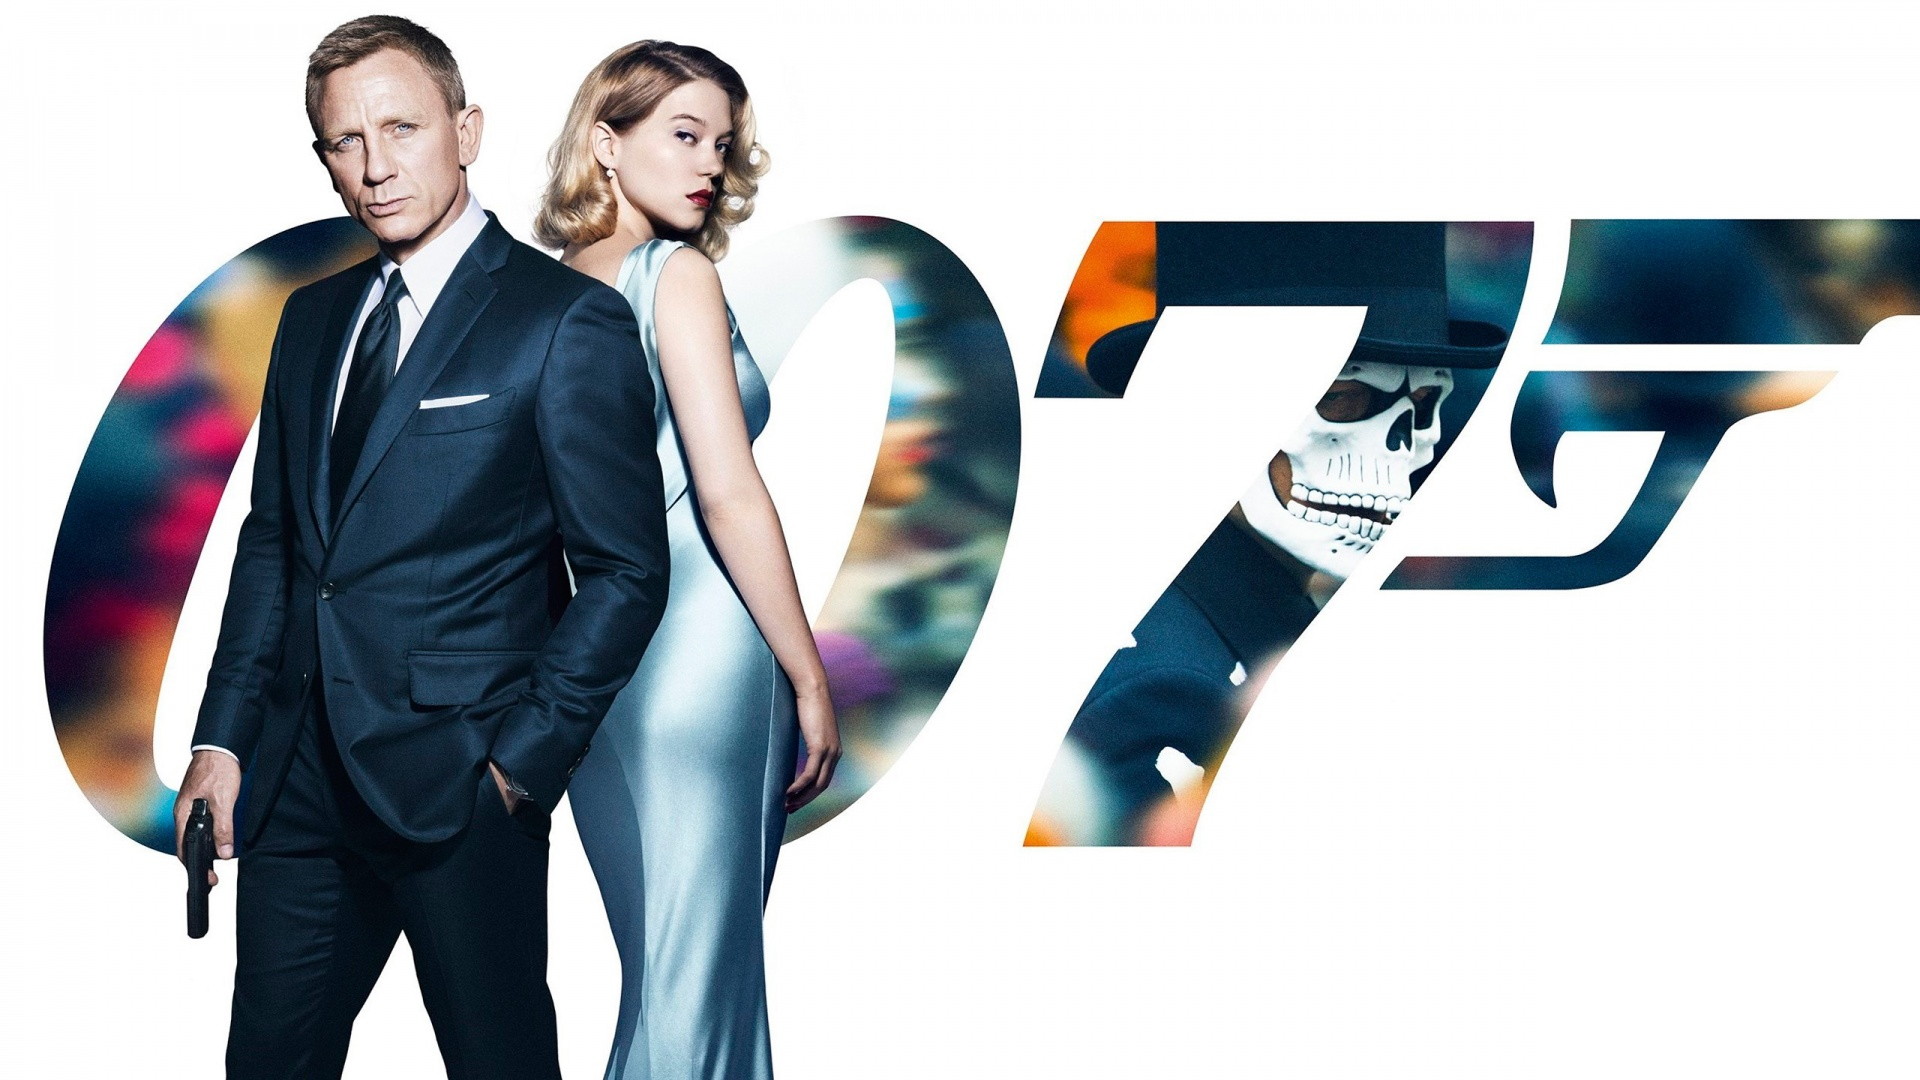 Spectre-2015-Bond-Movie-1920x1080